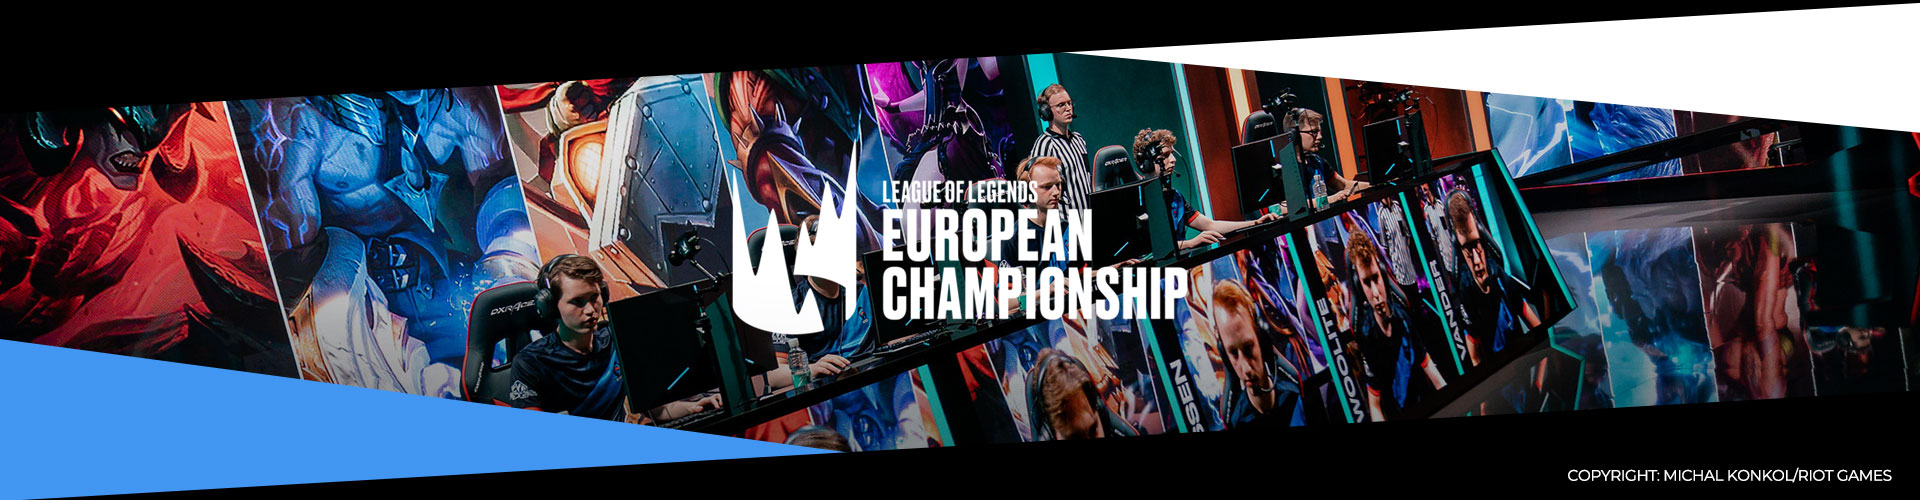 Eventsida för vårfinalerna av League of Legends European Championship.